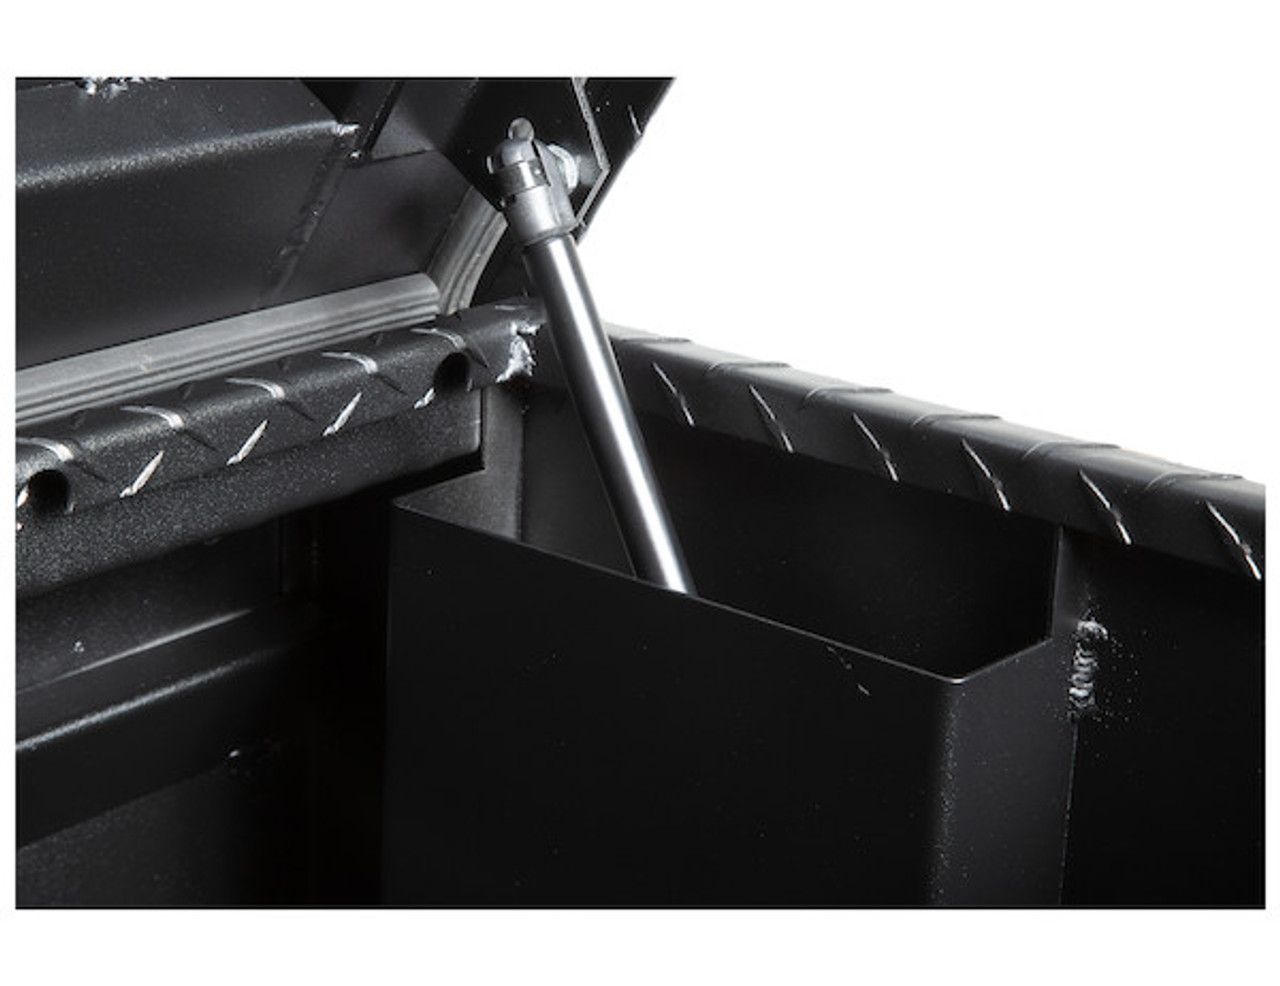 """1722010 BUYERS PRODUCTS TEXTURED MATTE BLACK DIAMOND TREAD ALUMINUM ALL-PURPOSE TOOLBOX WITH ANGLED BASE 19""""HX20""""DX47""""W Picture # 3"""